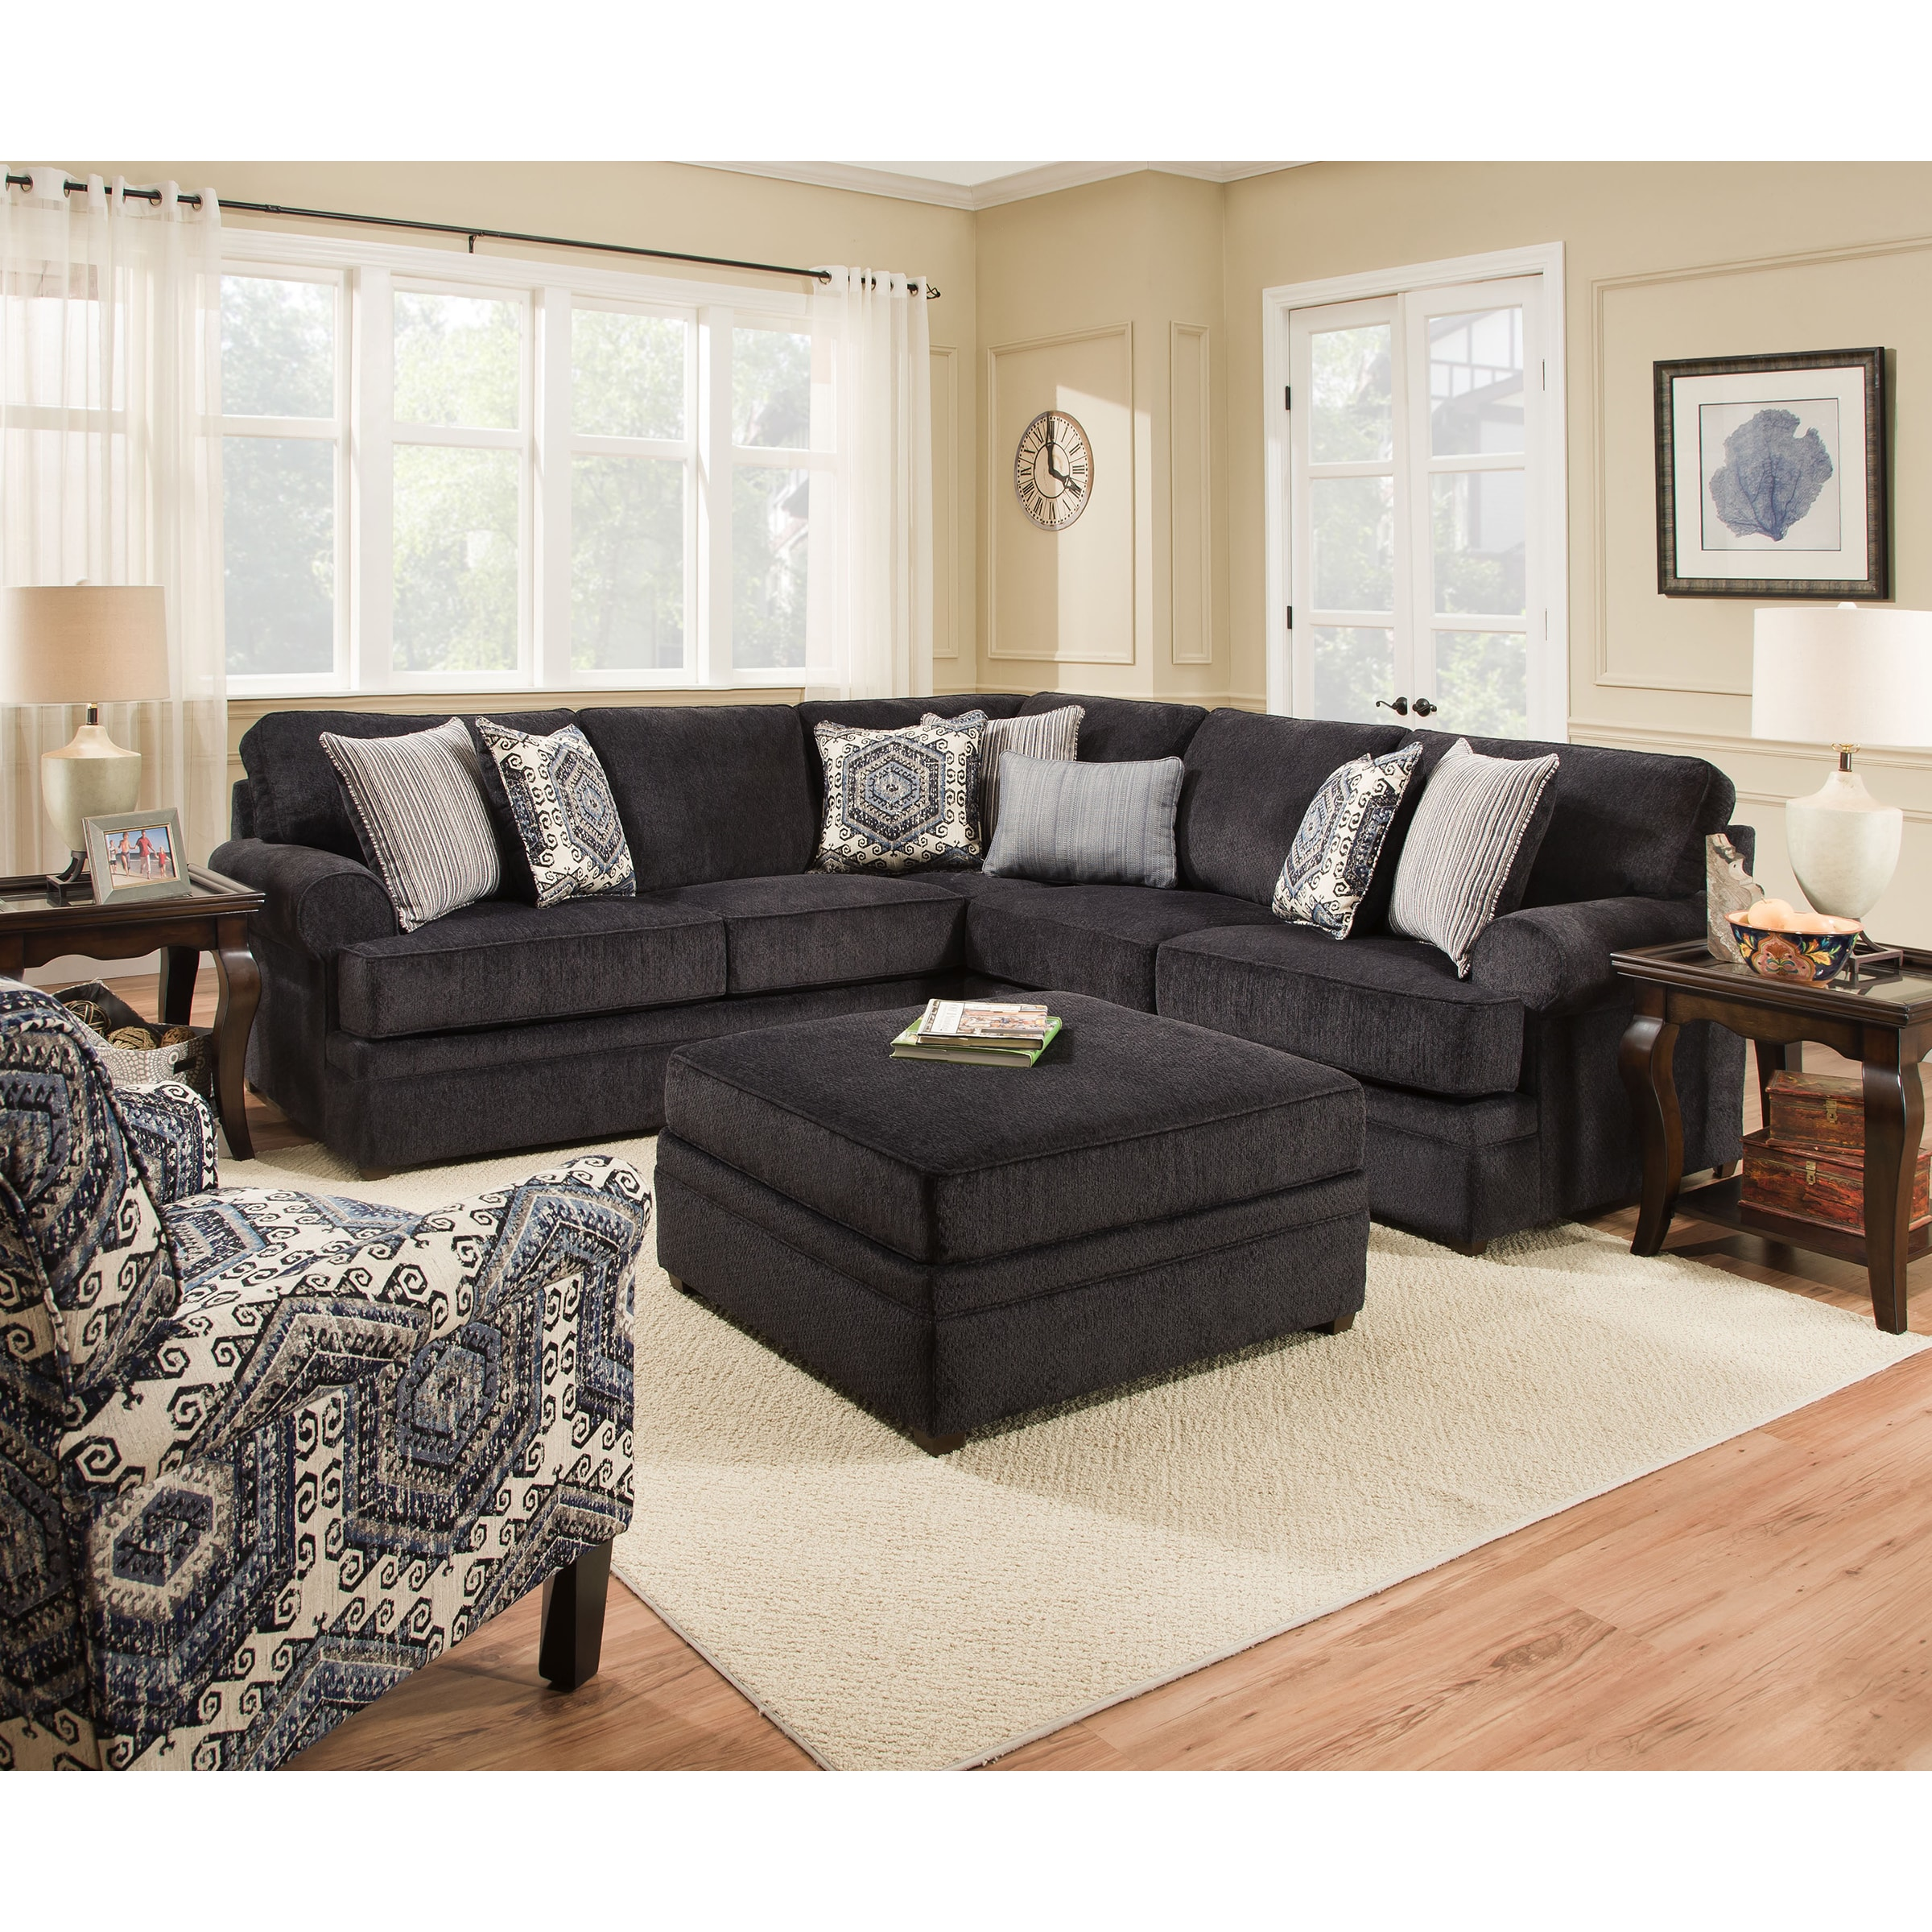 motion simmons home upholstery brown free shipping today product bingo overstock garden sectional